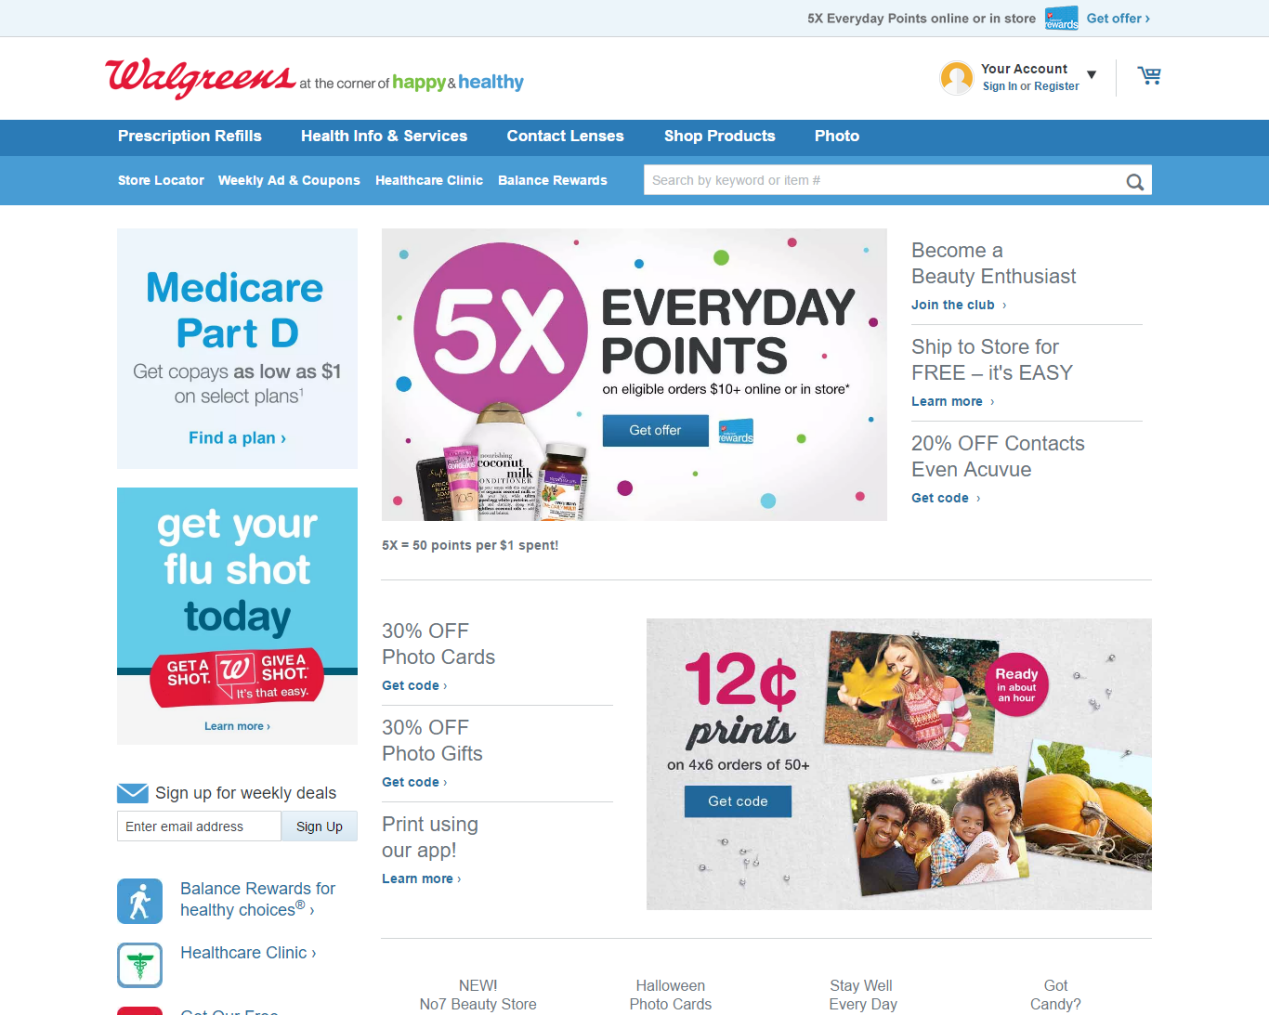 Walgreen Products